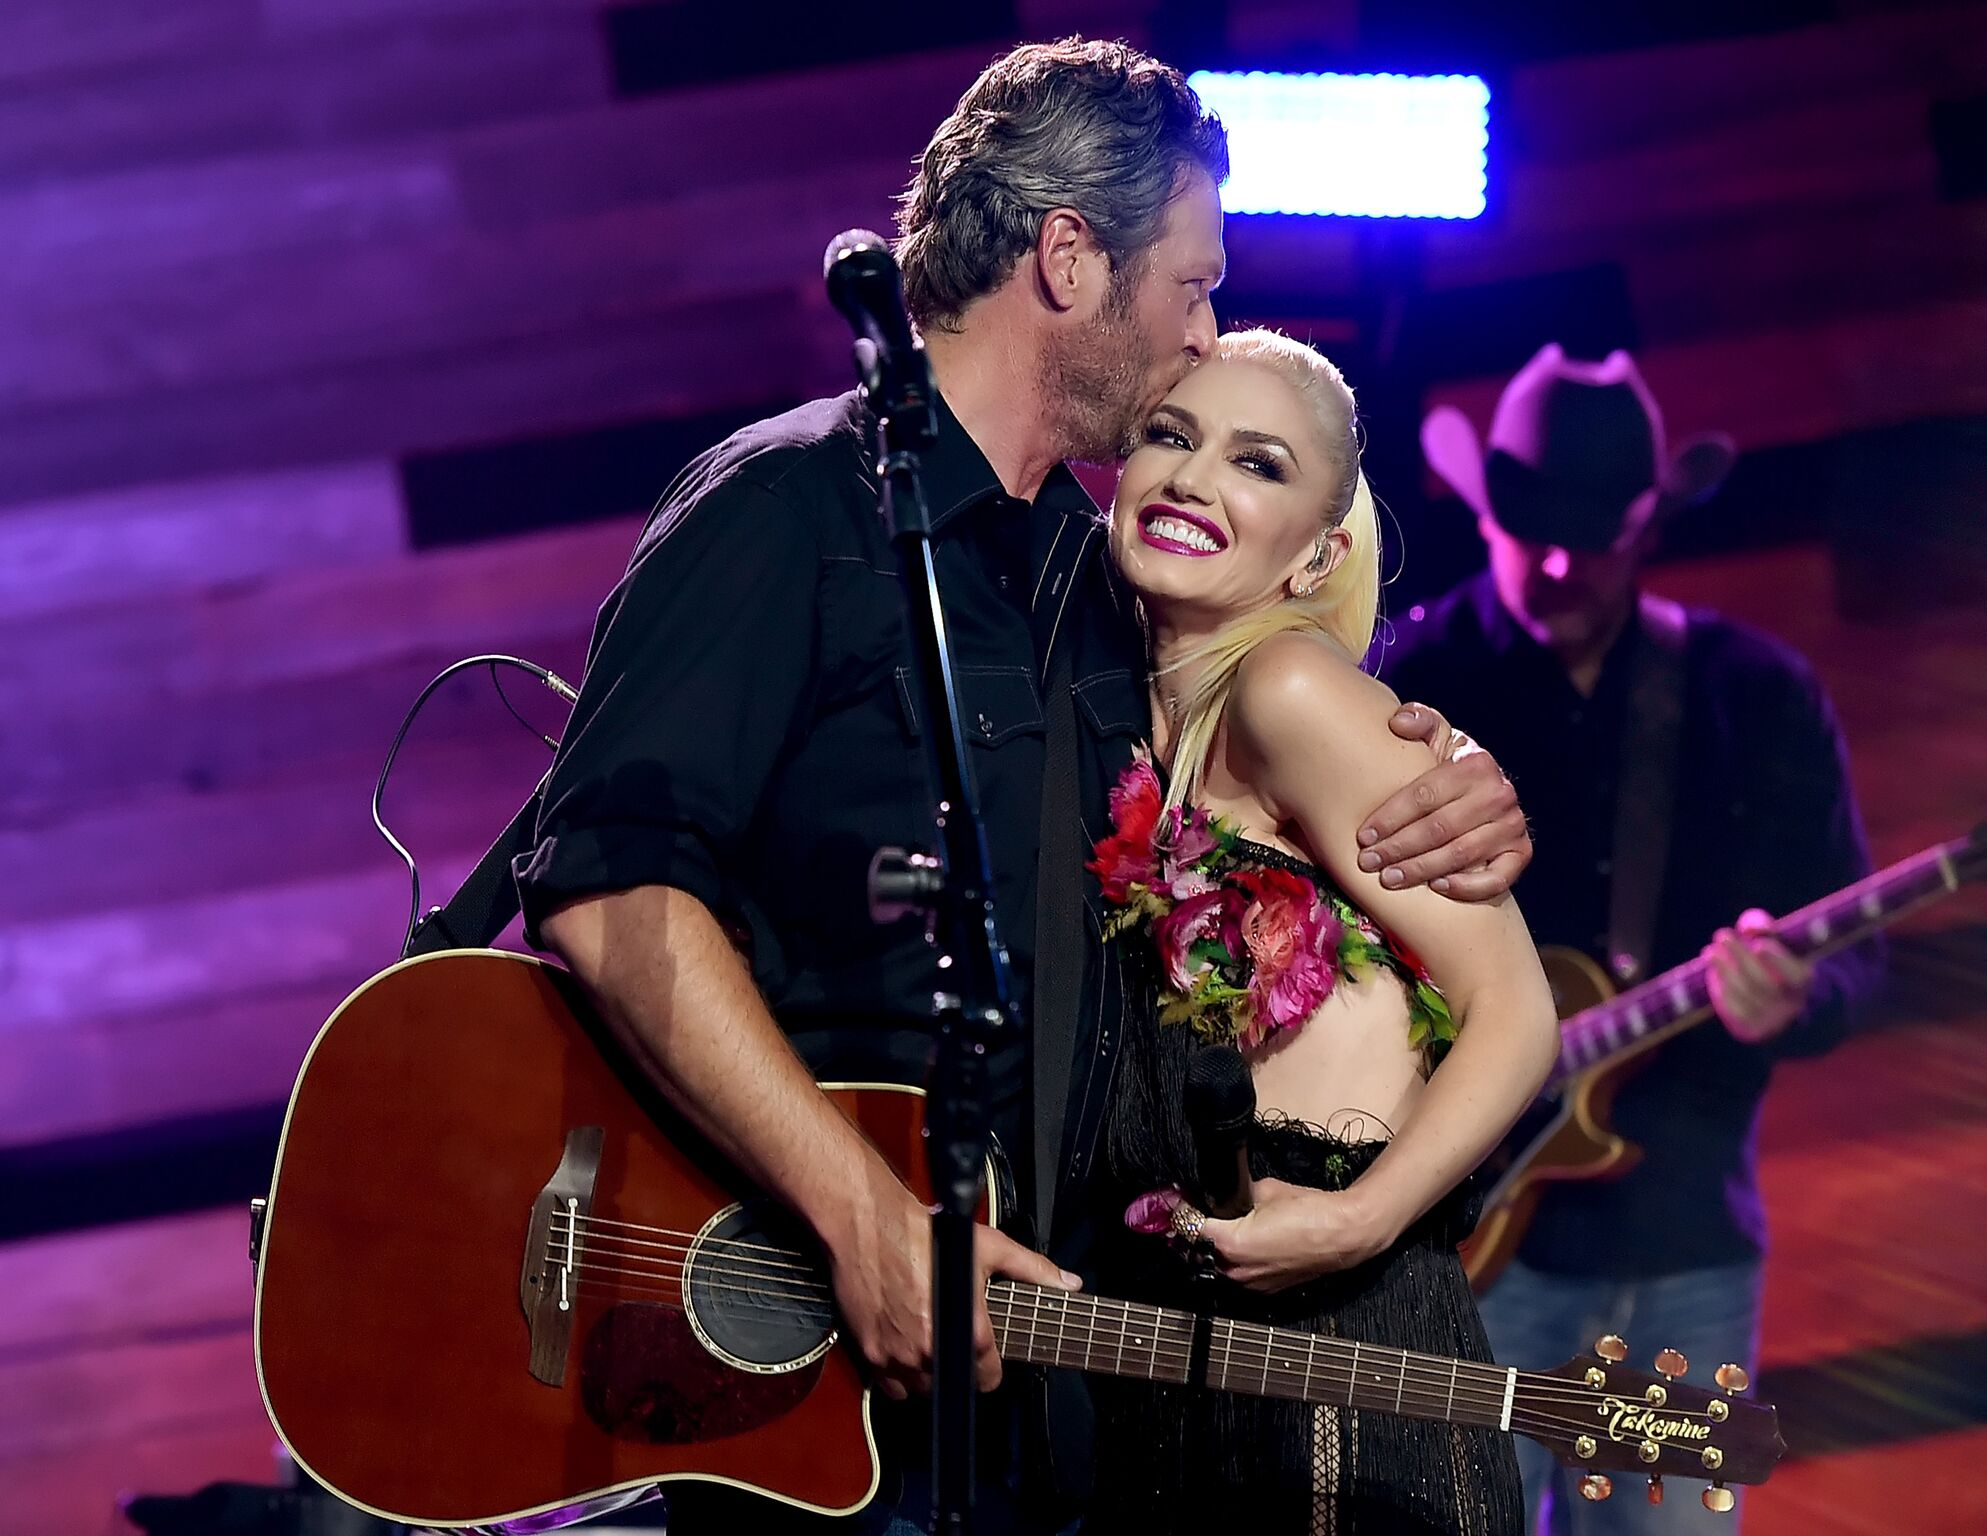 Blake Shelton and Gwen Stefani perform on the Honda Stage at the iHeartRadio Theater | Getty Images